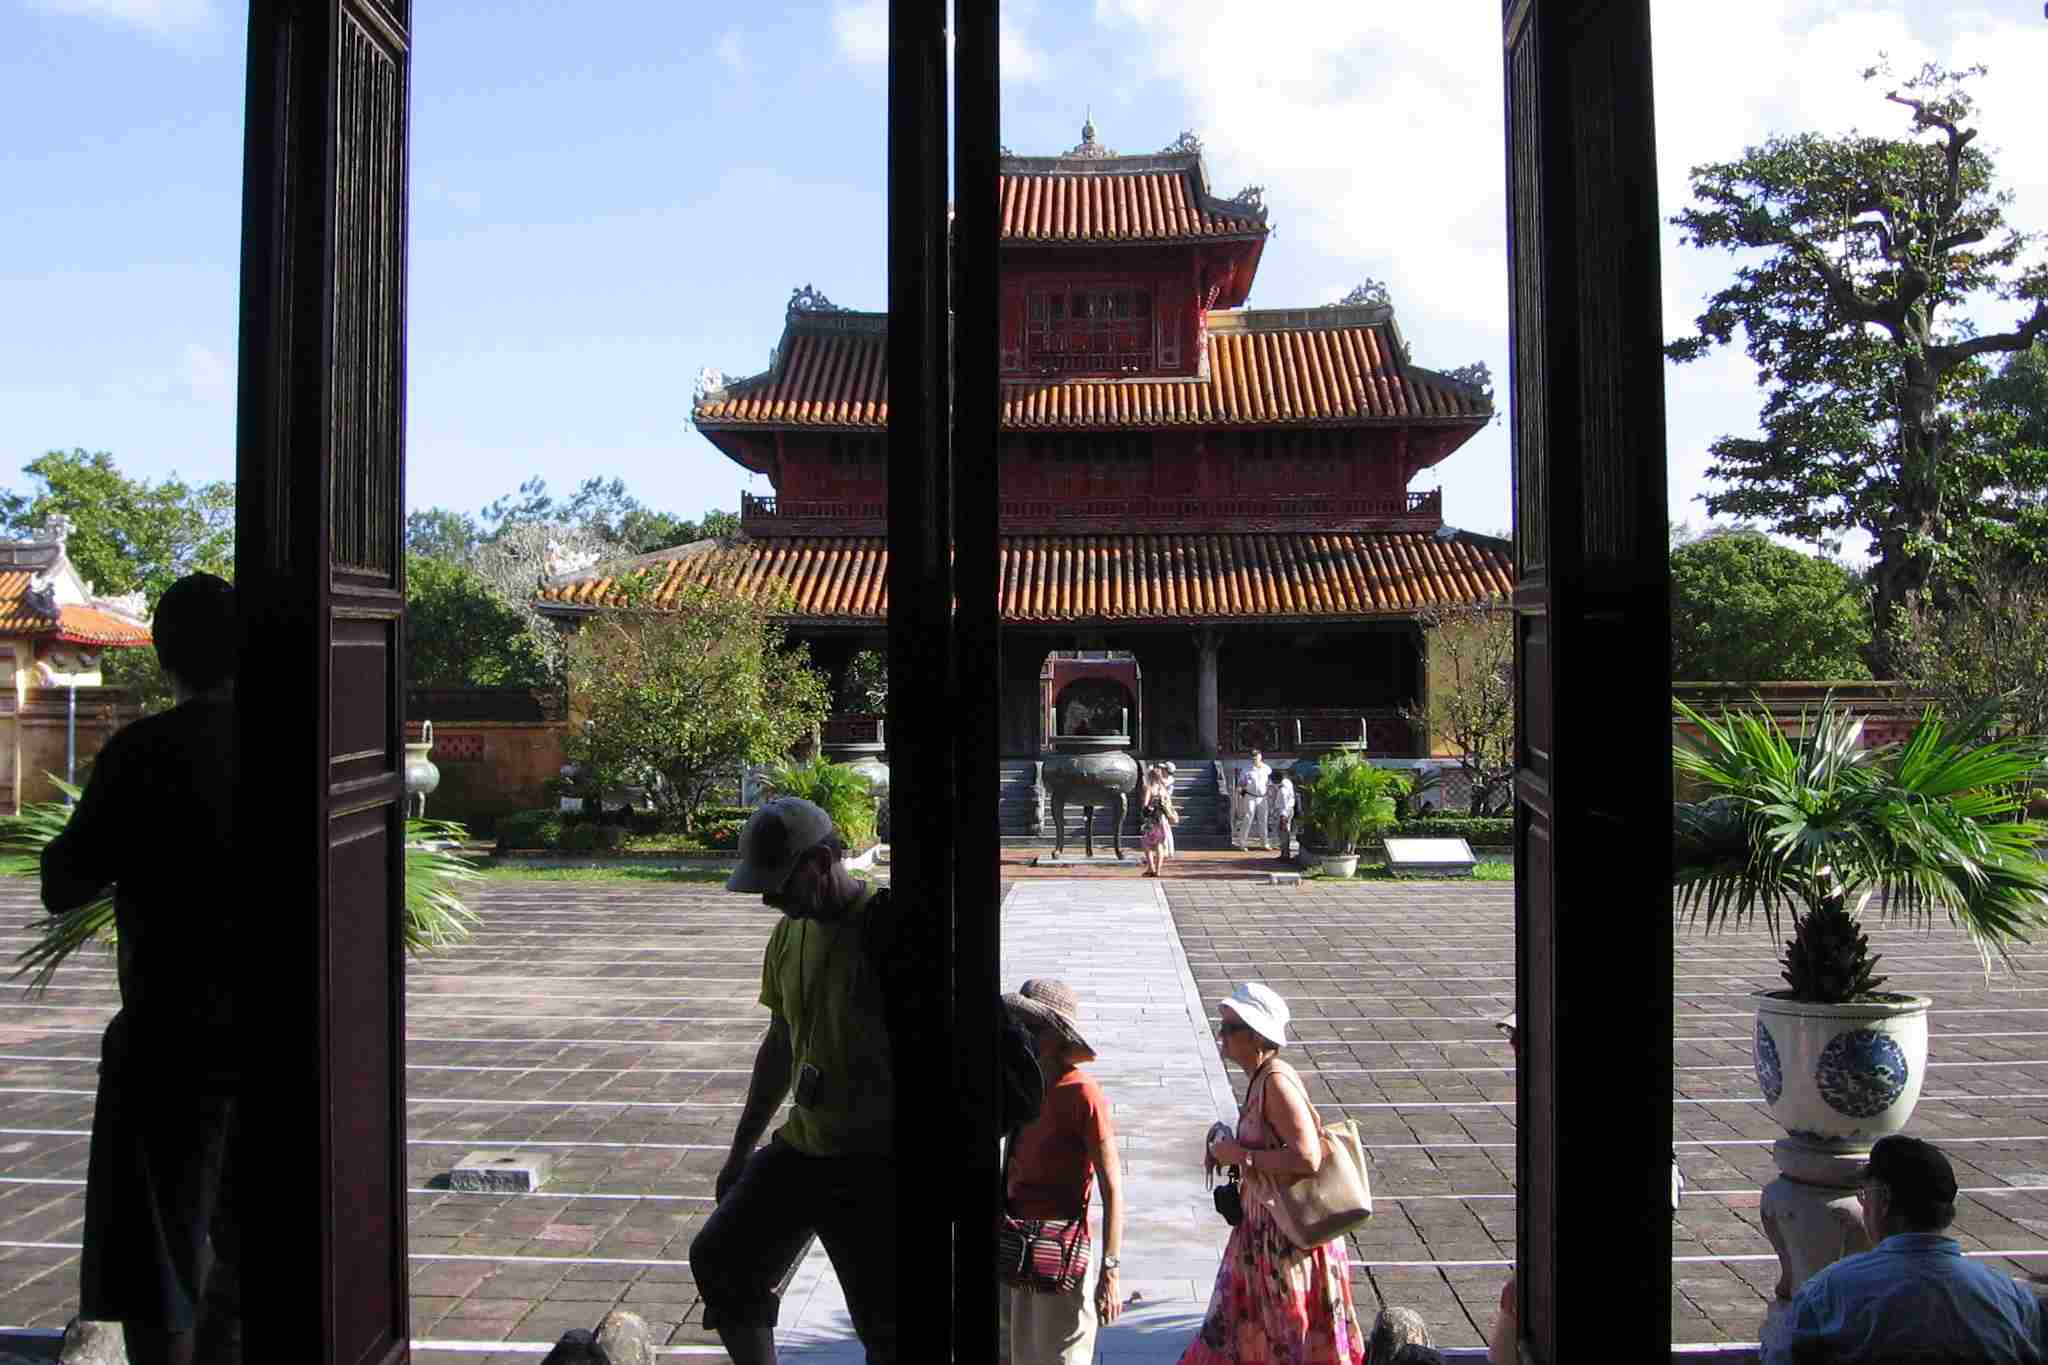 Hien Lam Pavilion and Nine Dynastic Urns, as seen from The To Mieu temple.